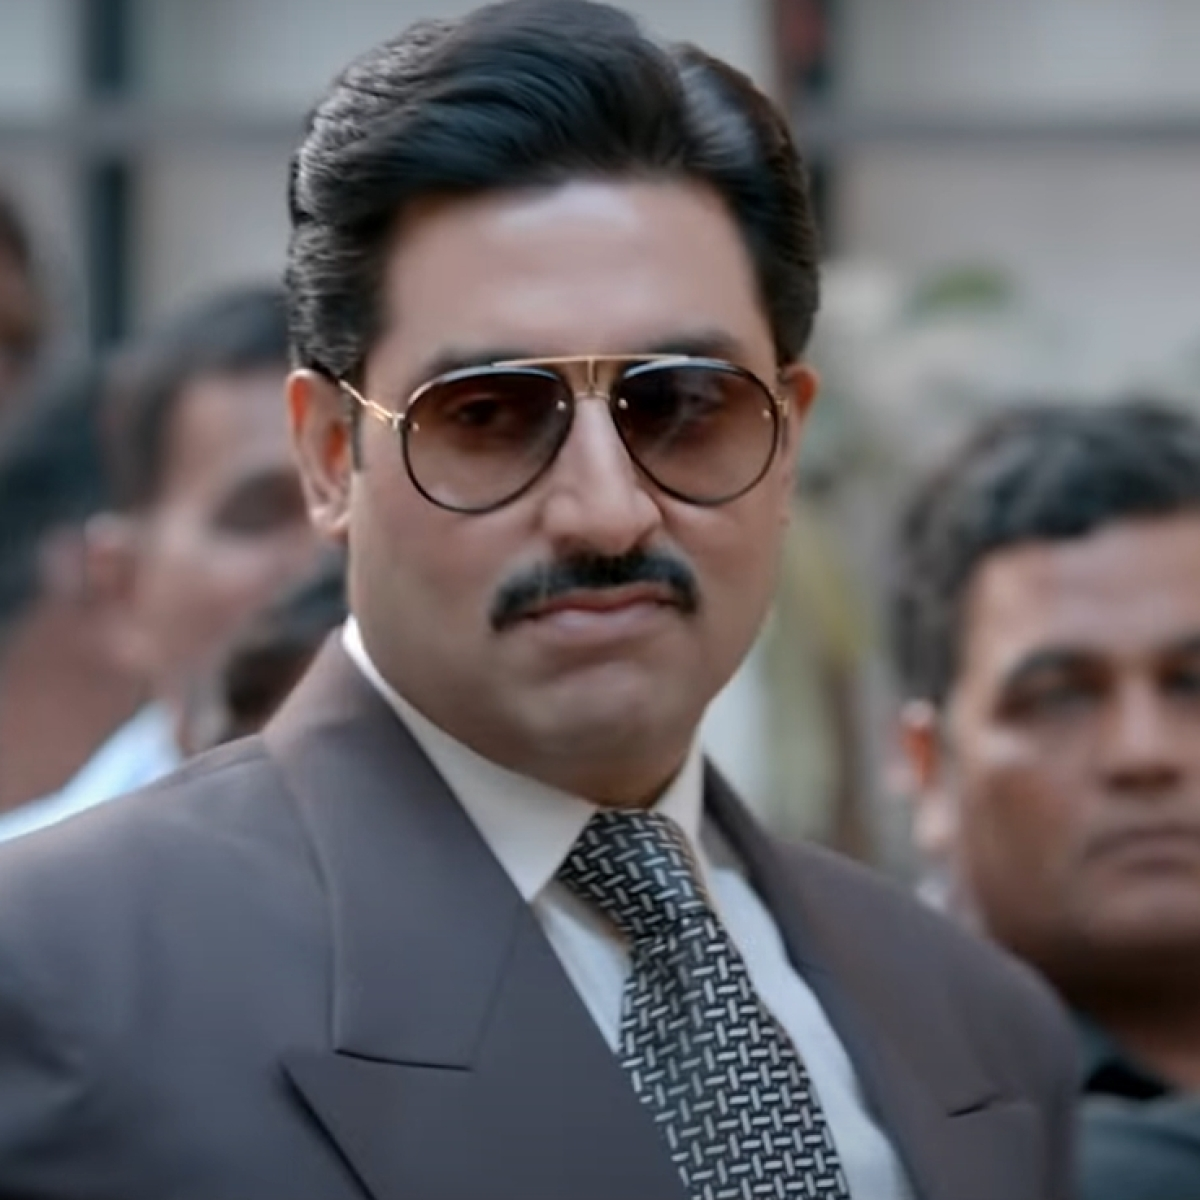 Abhishek Bachchan has an epic reply to netizen who mocked his acting skills in 'The Big Bull' review